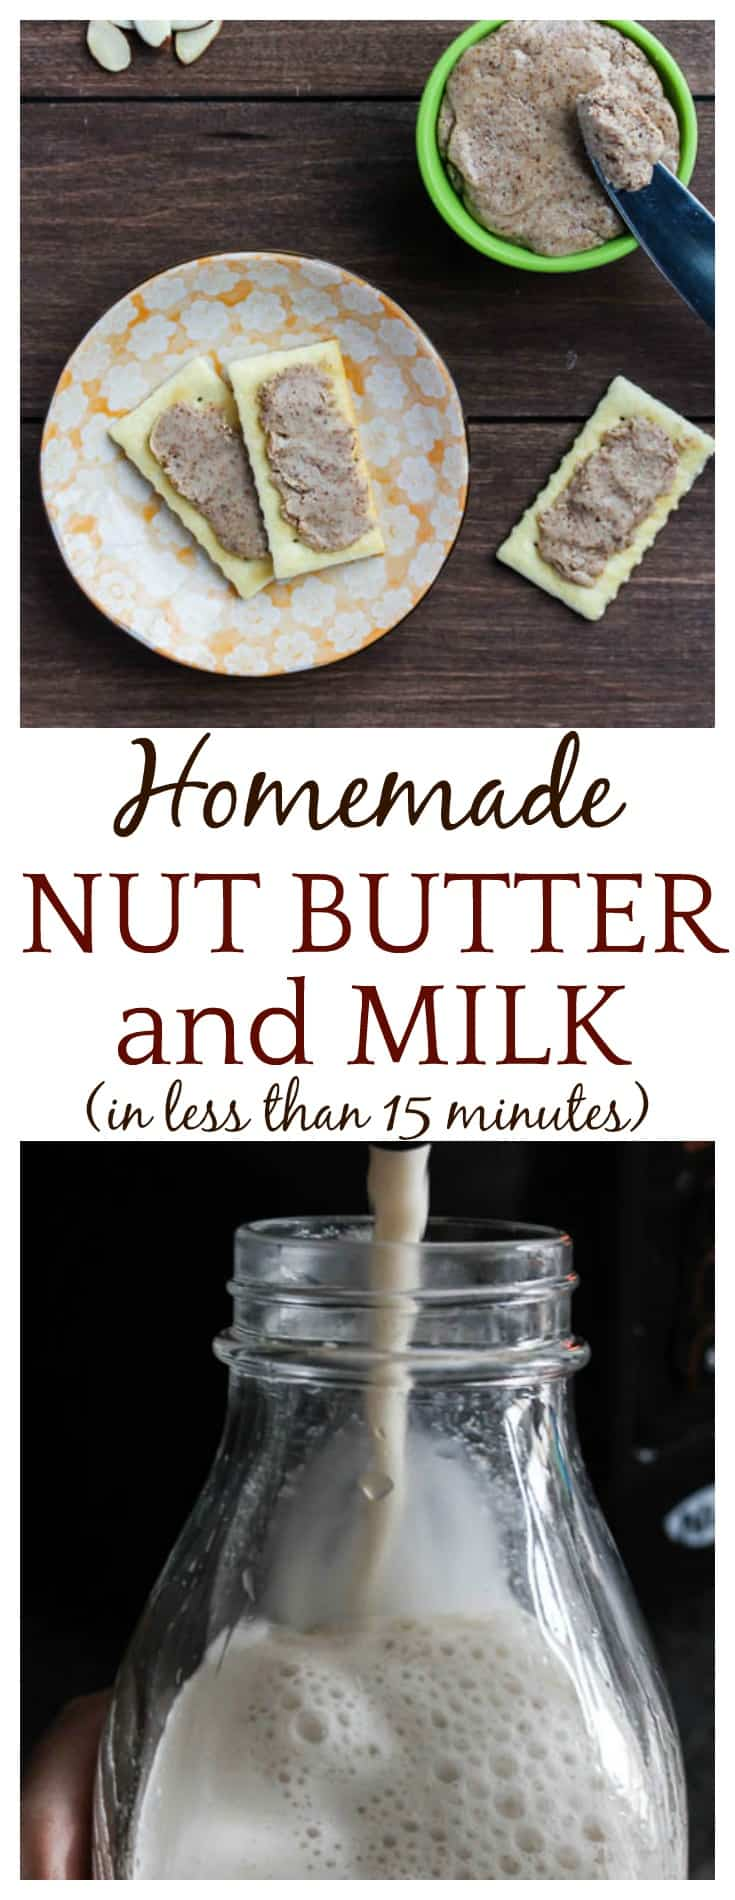 You can now make your own homemade nut butter and plant-based alternative milk in less than 15 minutes with The NutraMilk! Also makes seed butter, hummus, dips, smoothies and more! #ad #Pmedia #TheNutraMilk #homemademilk #homemade #homemadenutbutter